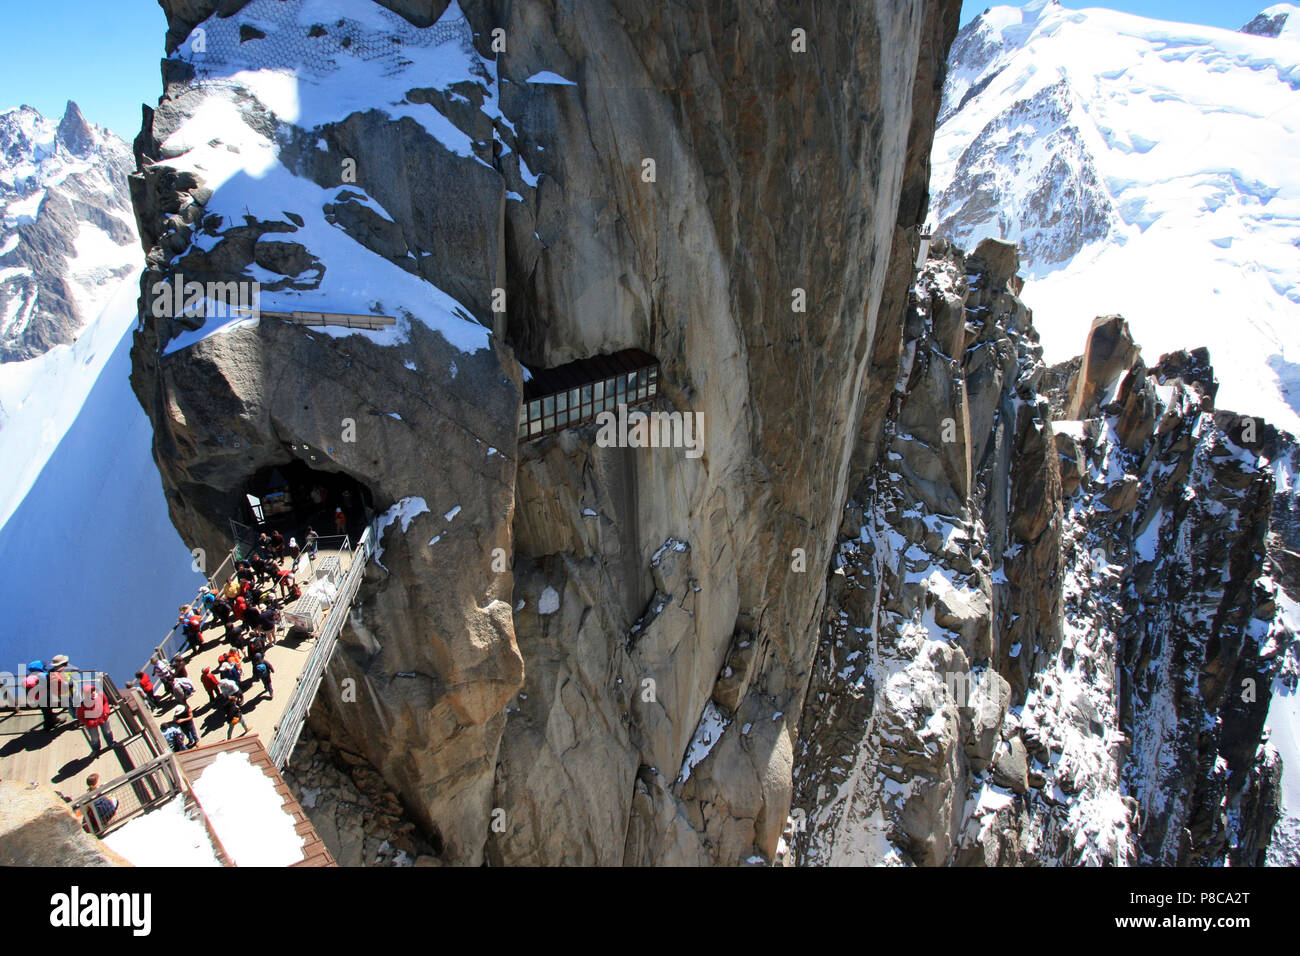 Tourists at the observation platform on top of Aiguille-du-Midi in the Mont Blanc massif in France Stock Photo